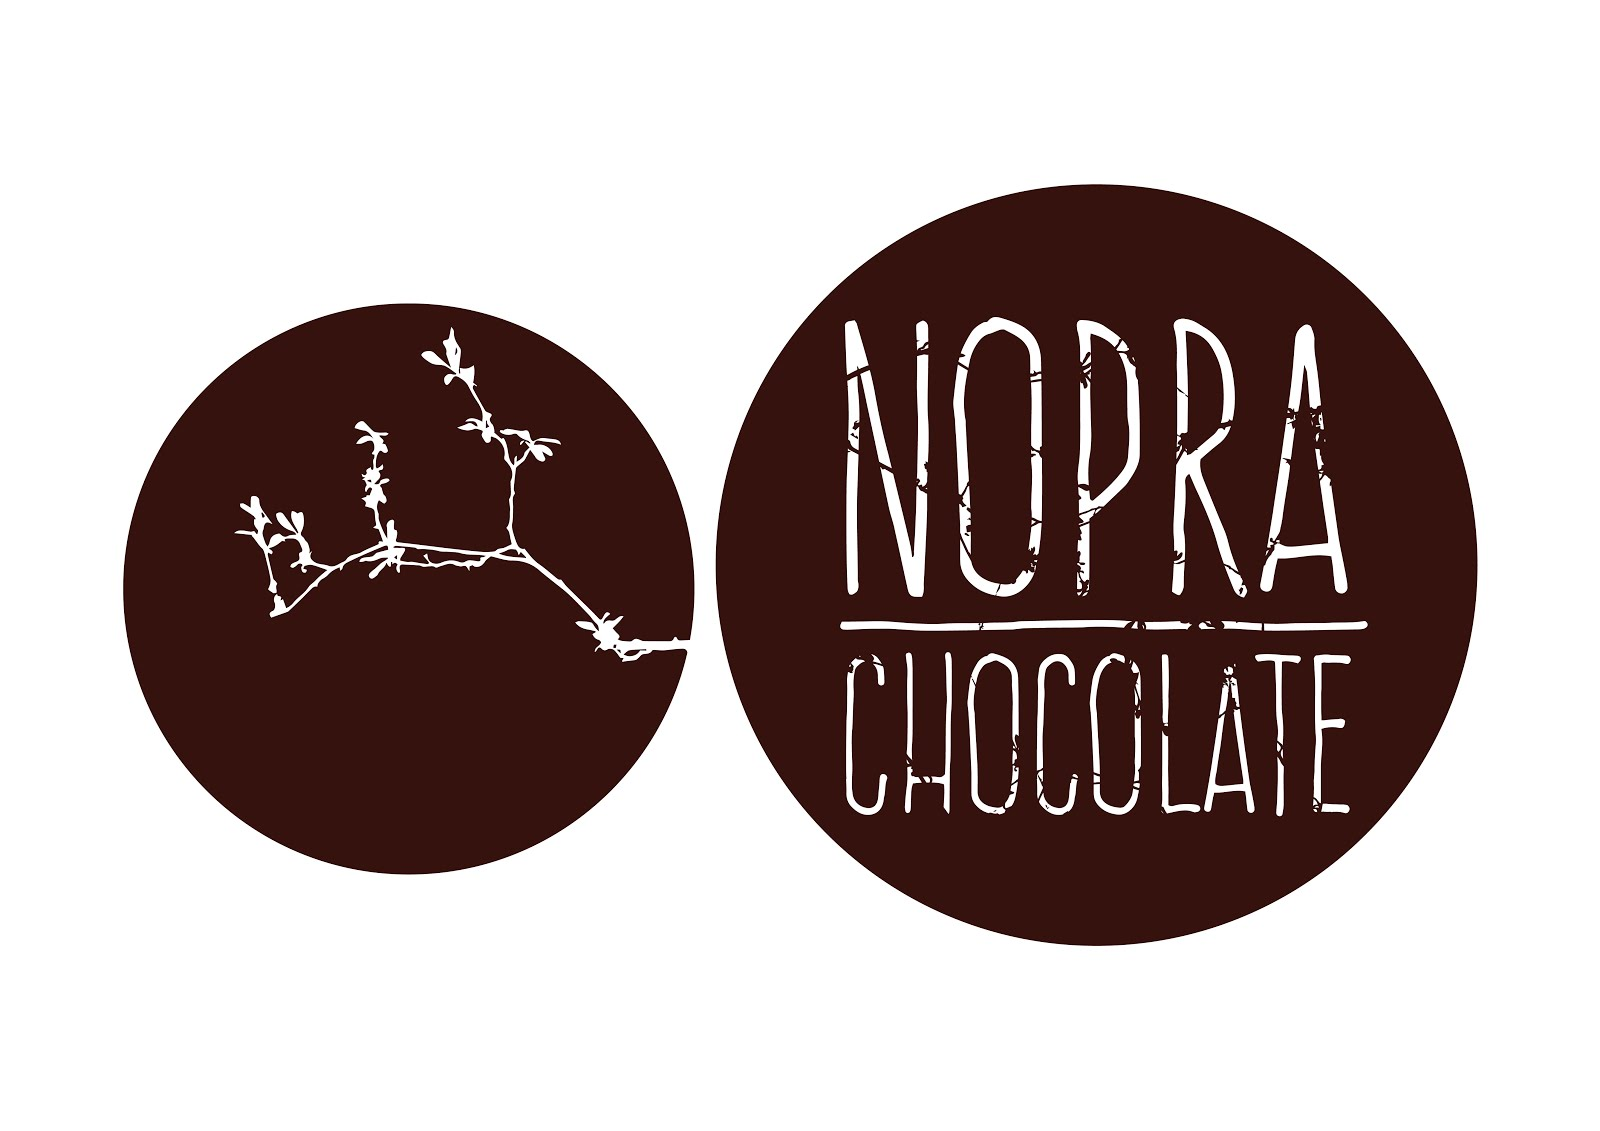 NOPRA CHOCOLATE